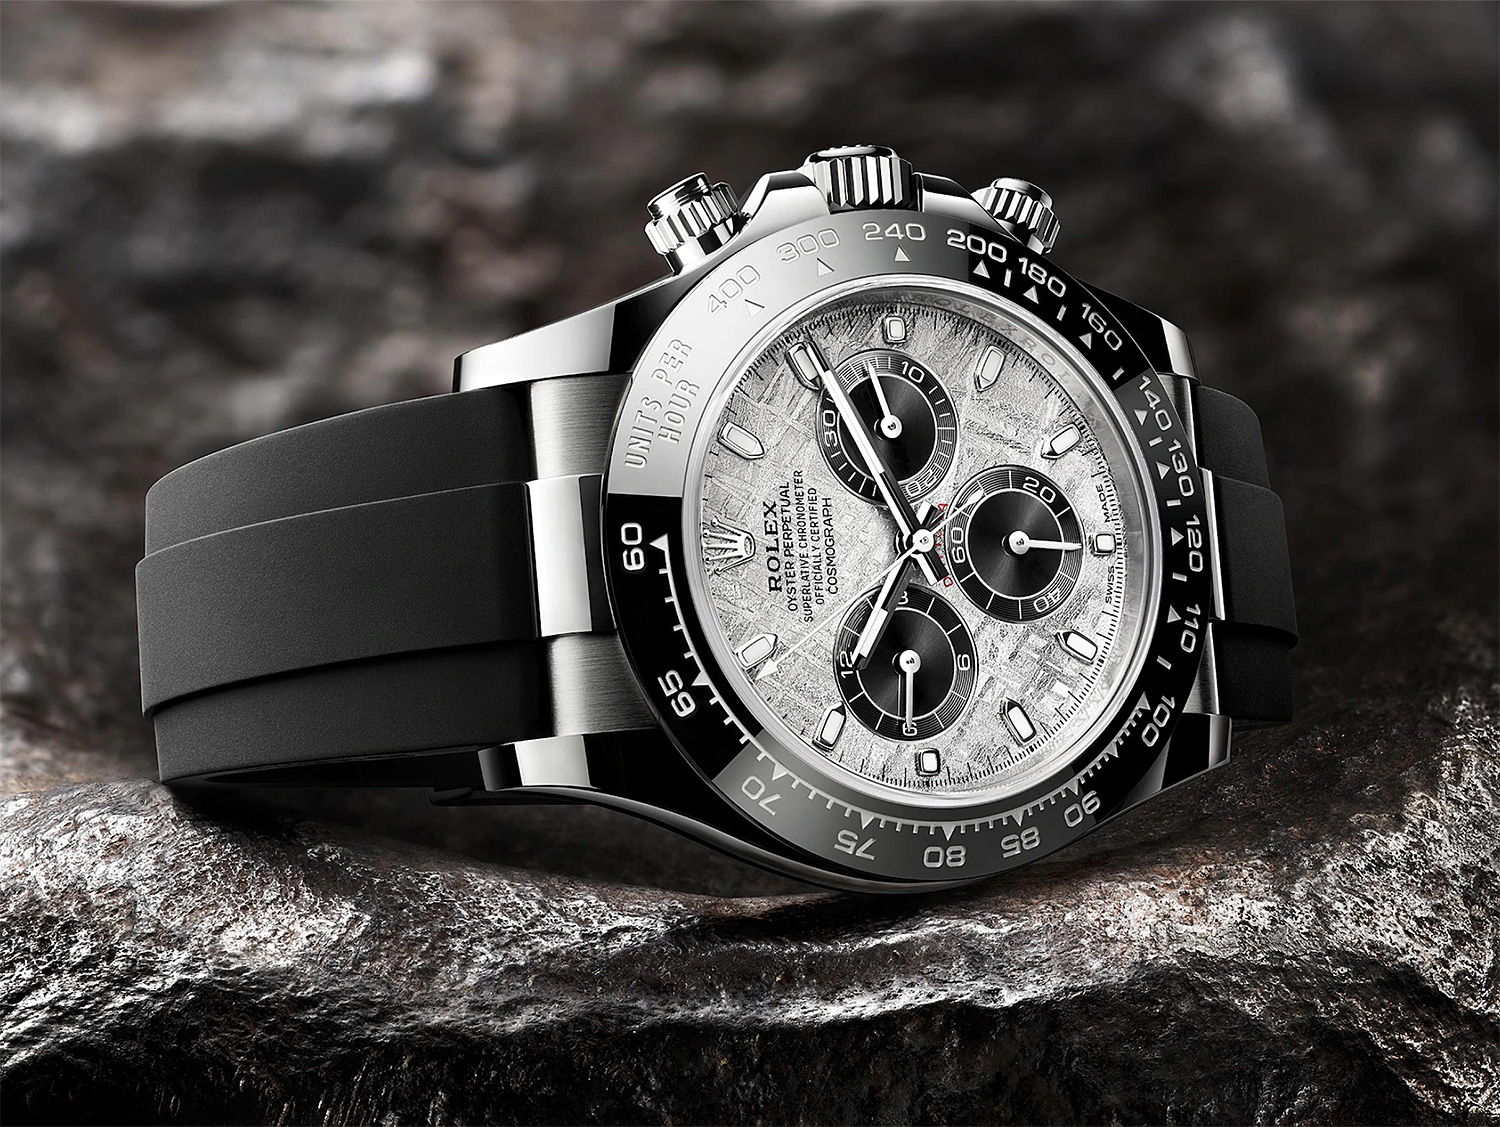 The Cosmograph Daytona with Meteorite Dial is a Rolex from Out Of This World at werd.com